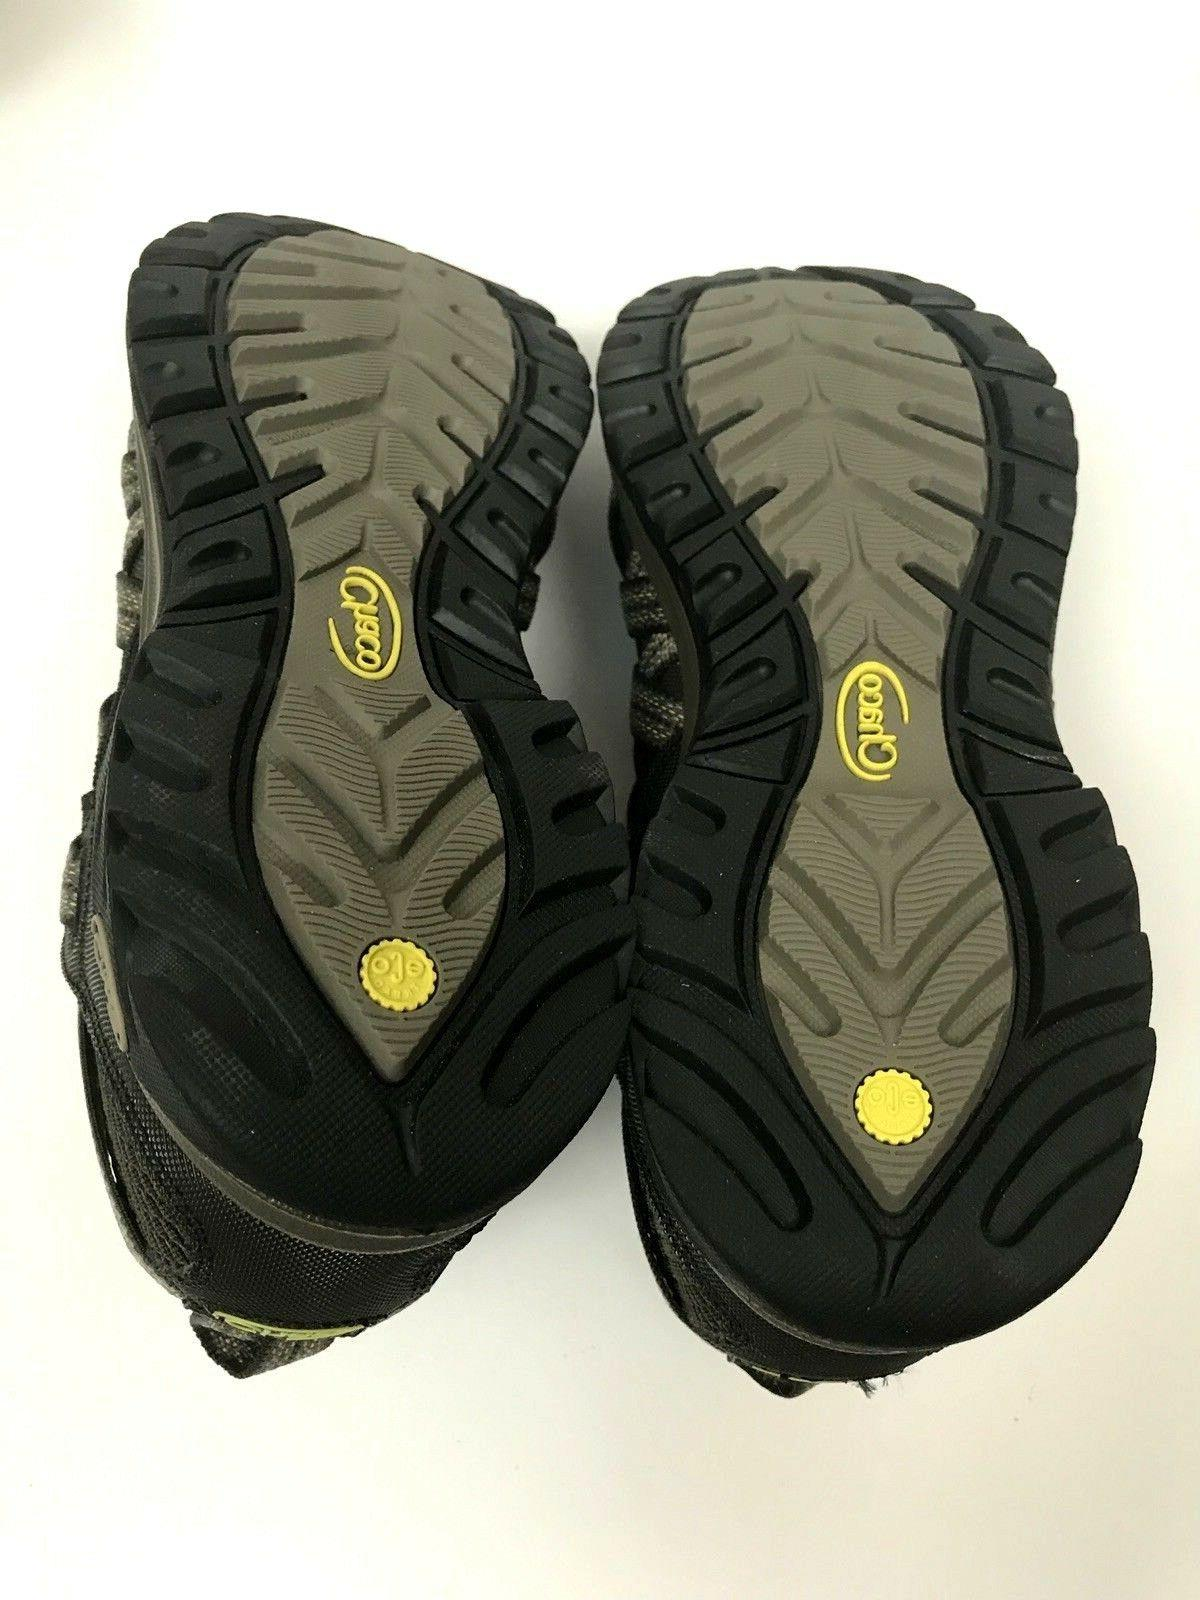 CHACO 1 Outdoor Trail Hiking Shoes Sz 10.5 $110